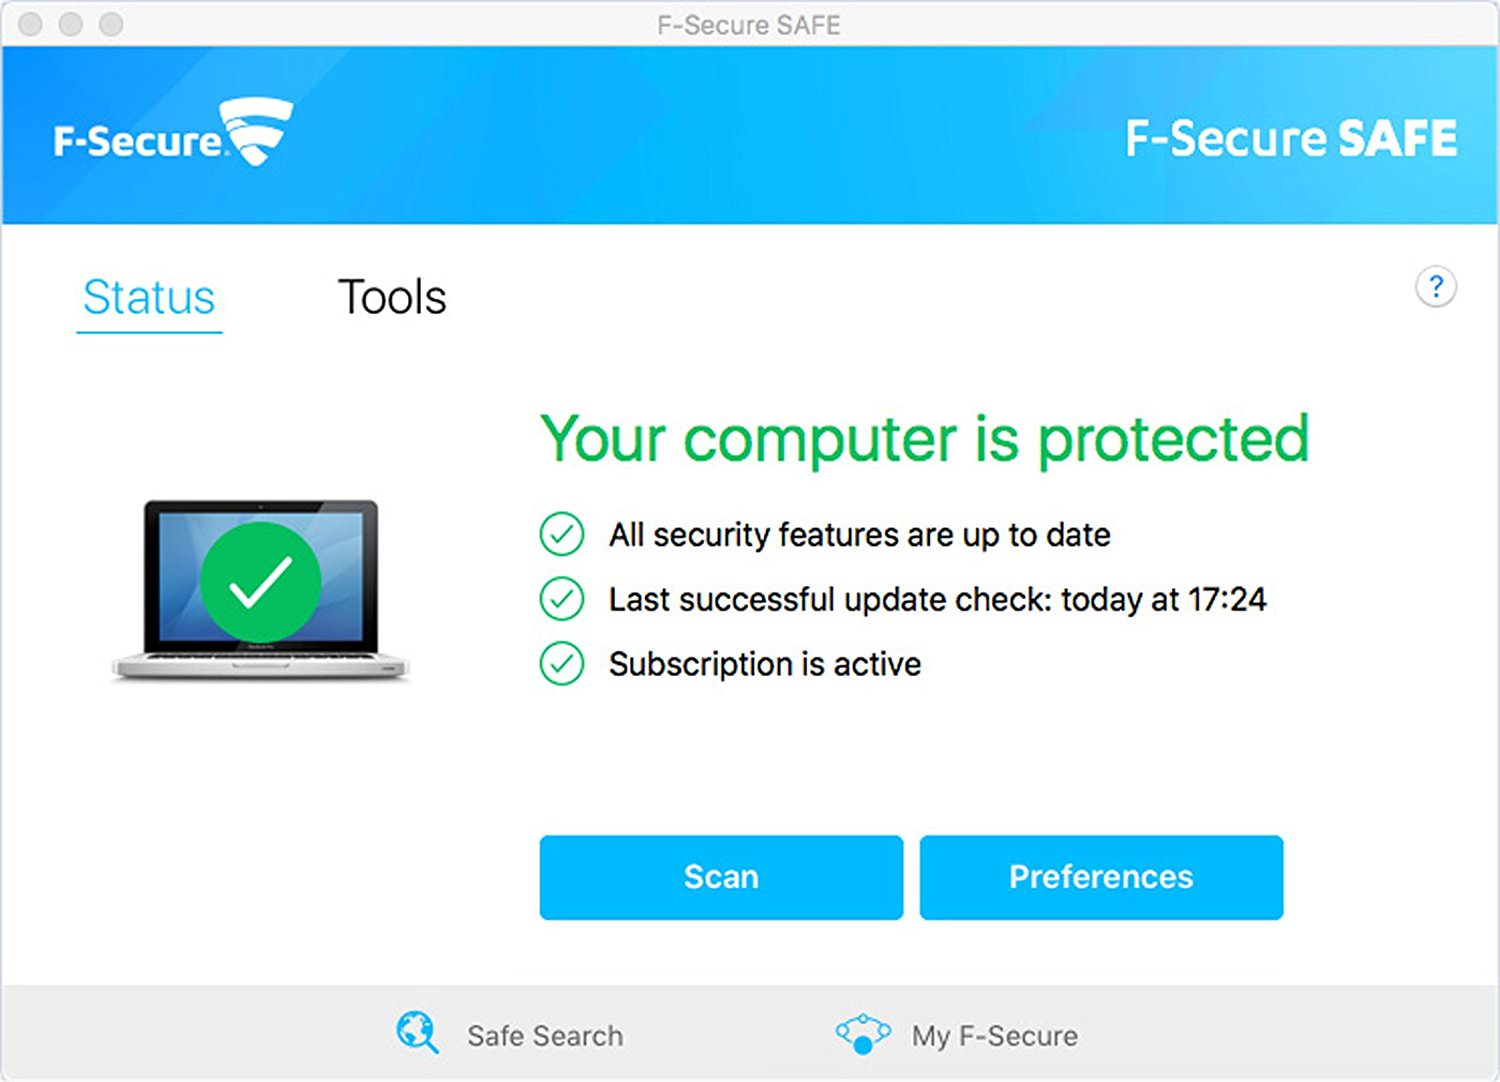 Free Internet Security >> F Secure Safe 1 Year Activation Free Internet Security For Pcs